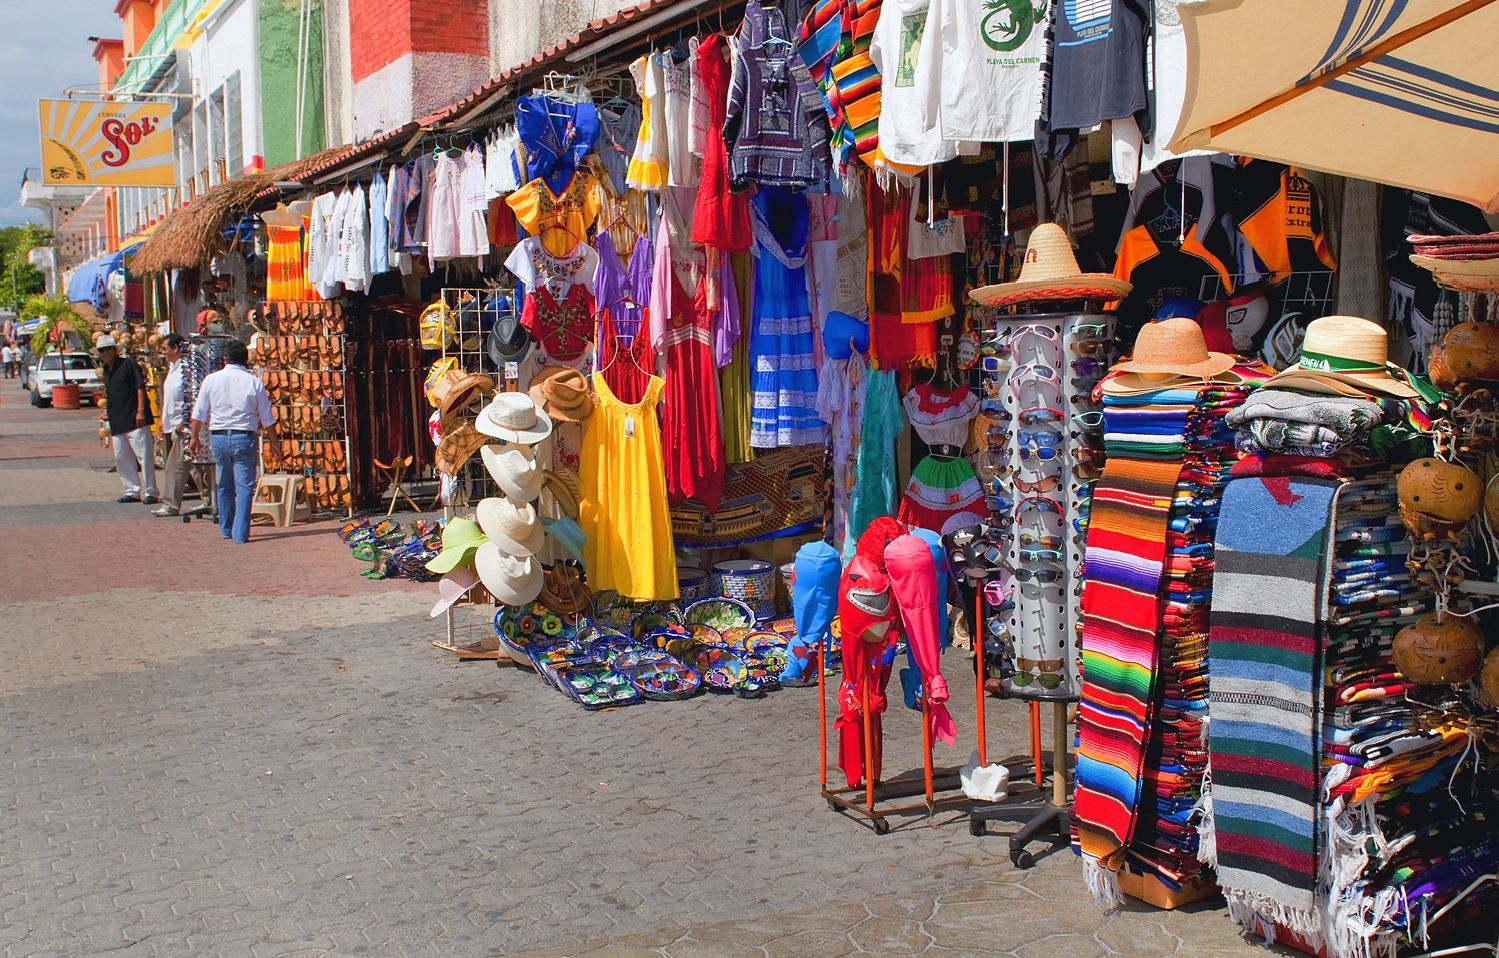 Playa Del Carmen Mexico June 2013 This Is 5th Ave In Playa Del